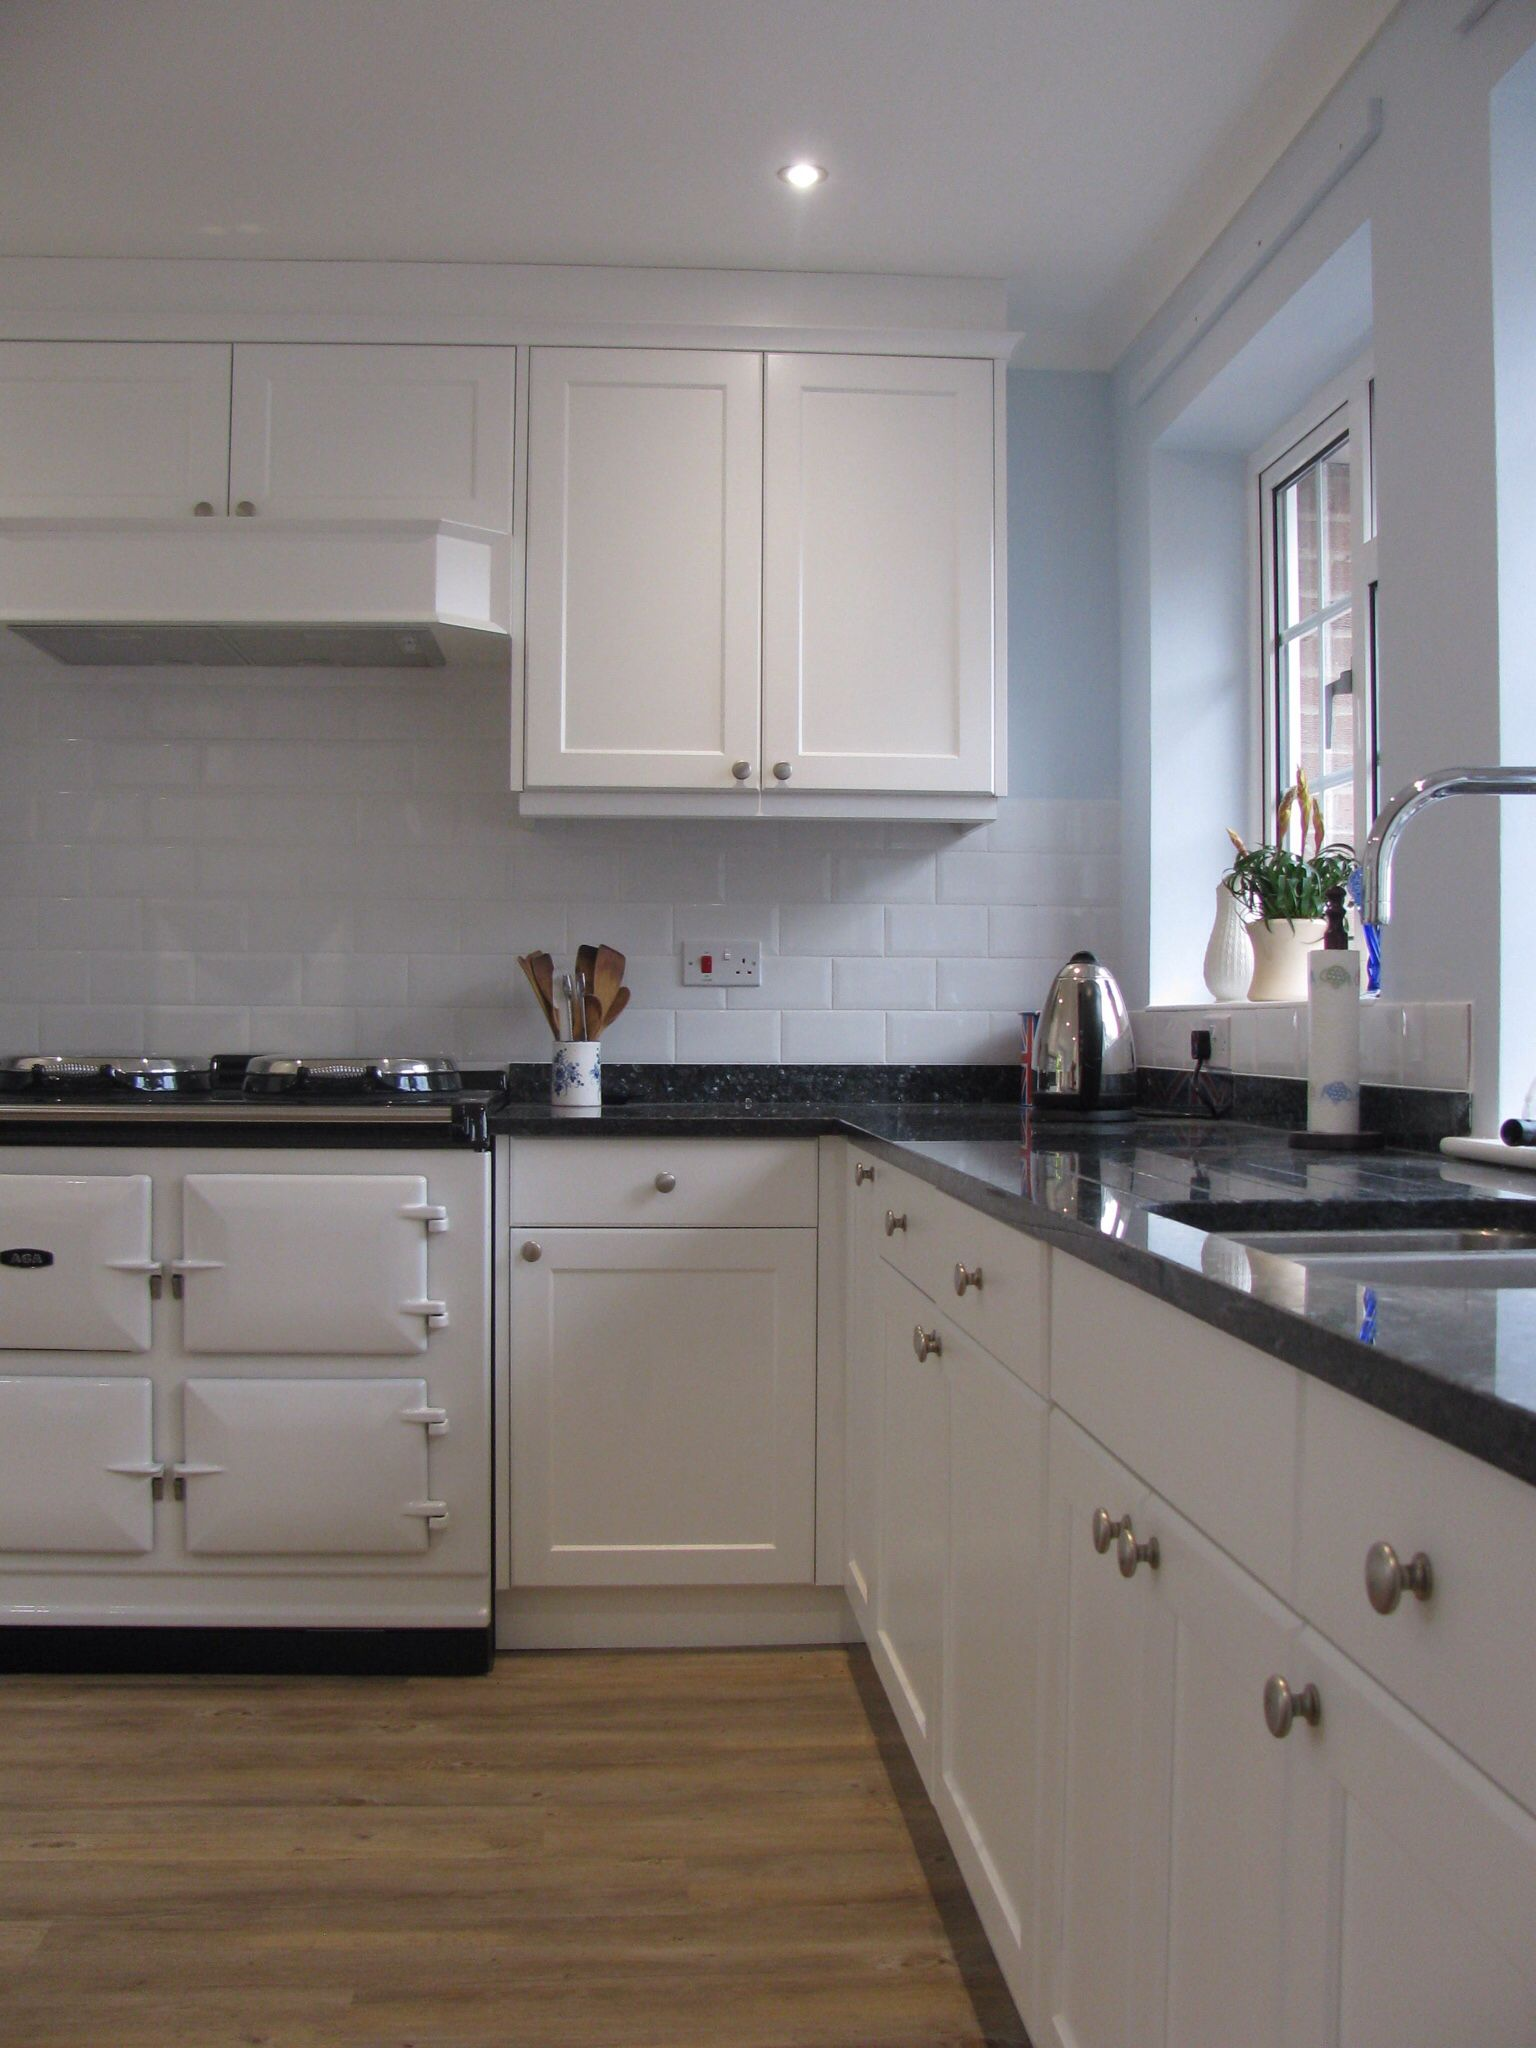 Blue Countertops White Cabinets Bespoke Kitchen Finished In Satin White With Blue Pearl